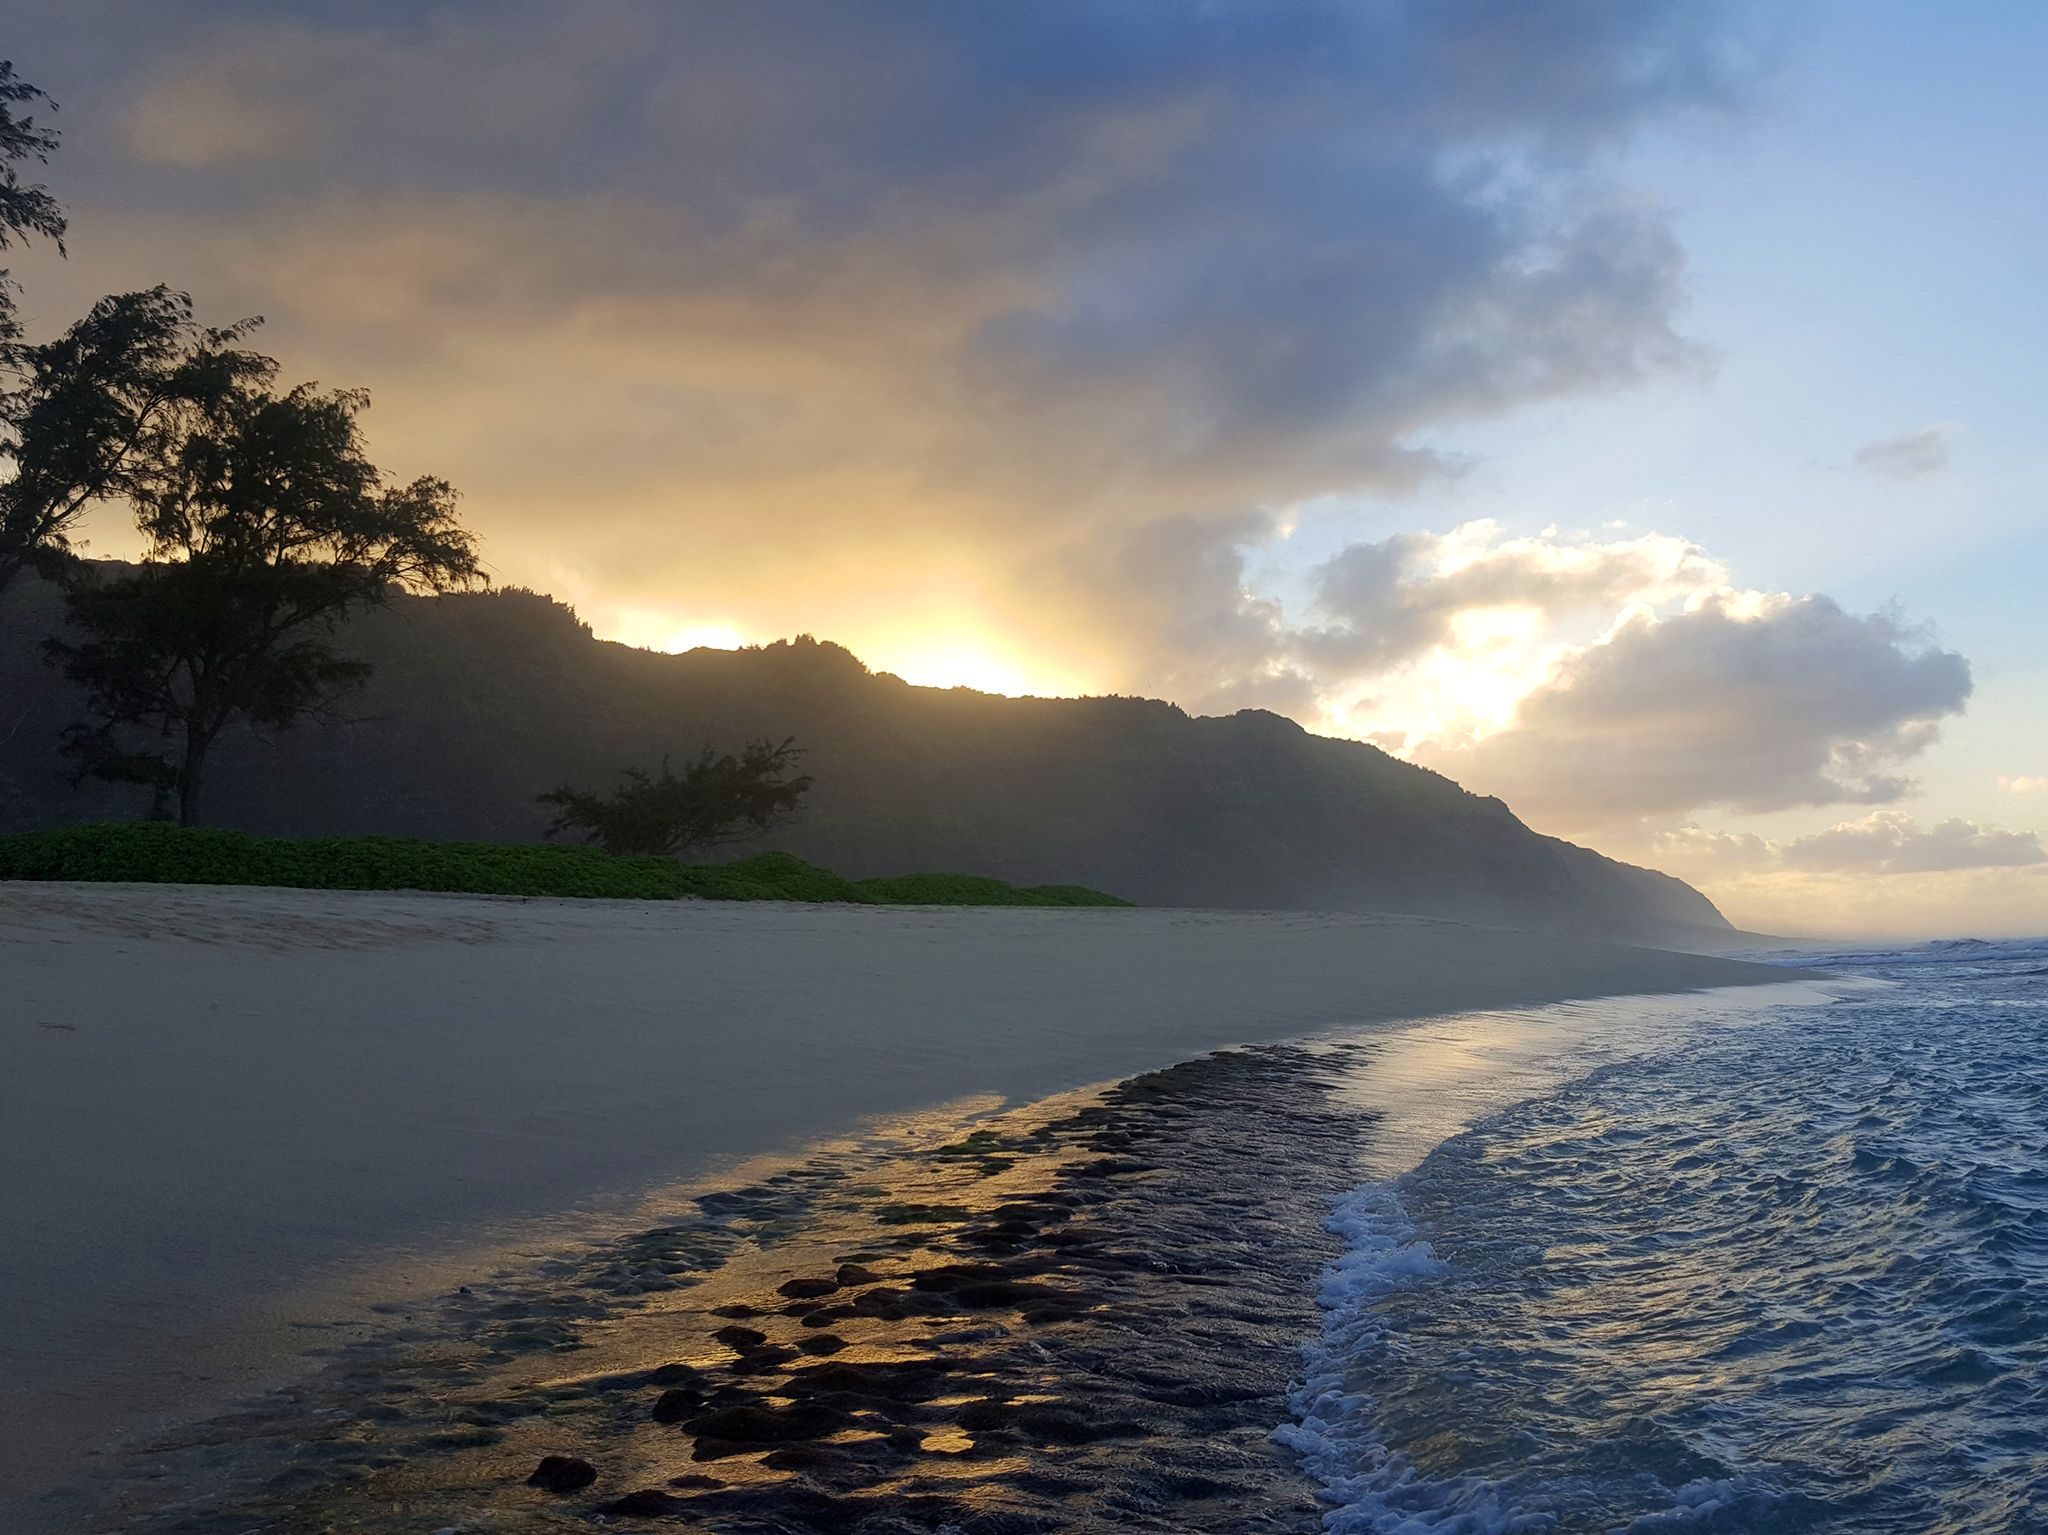 Hawaii North Shore approaching sunset.  This image is from Drain the Oceans. [Photo of the day - می 2019]